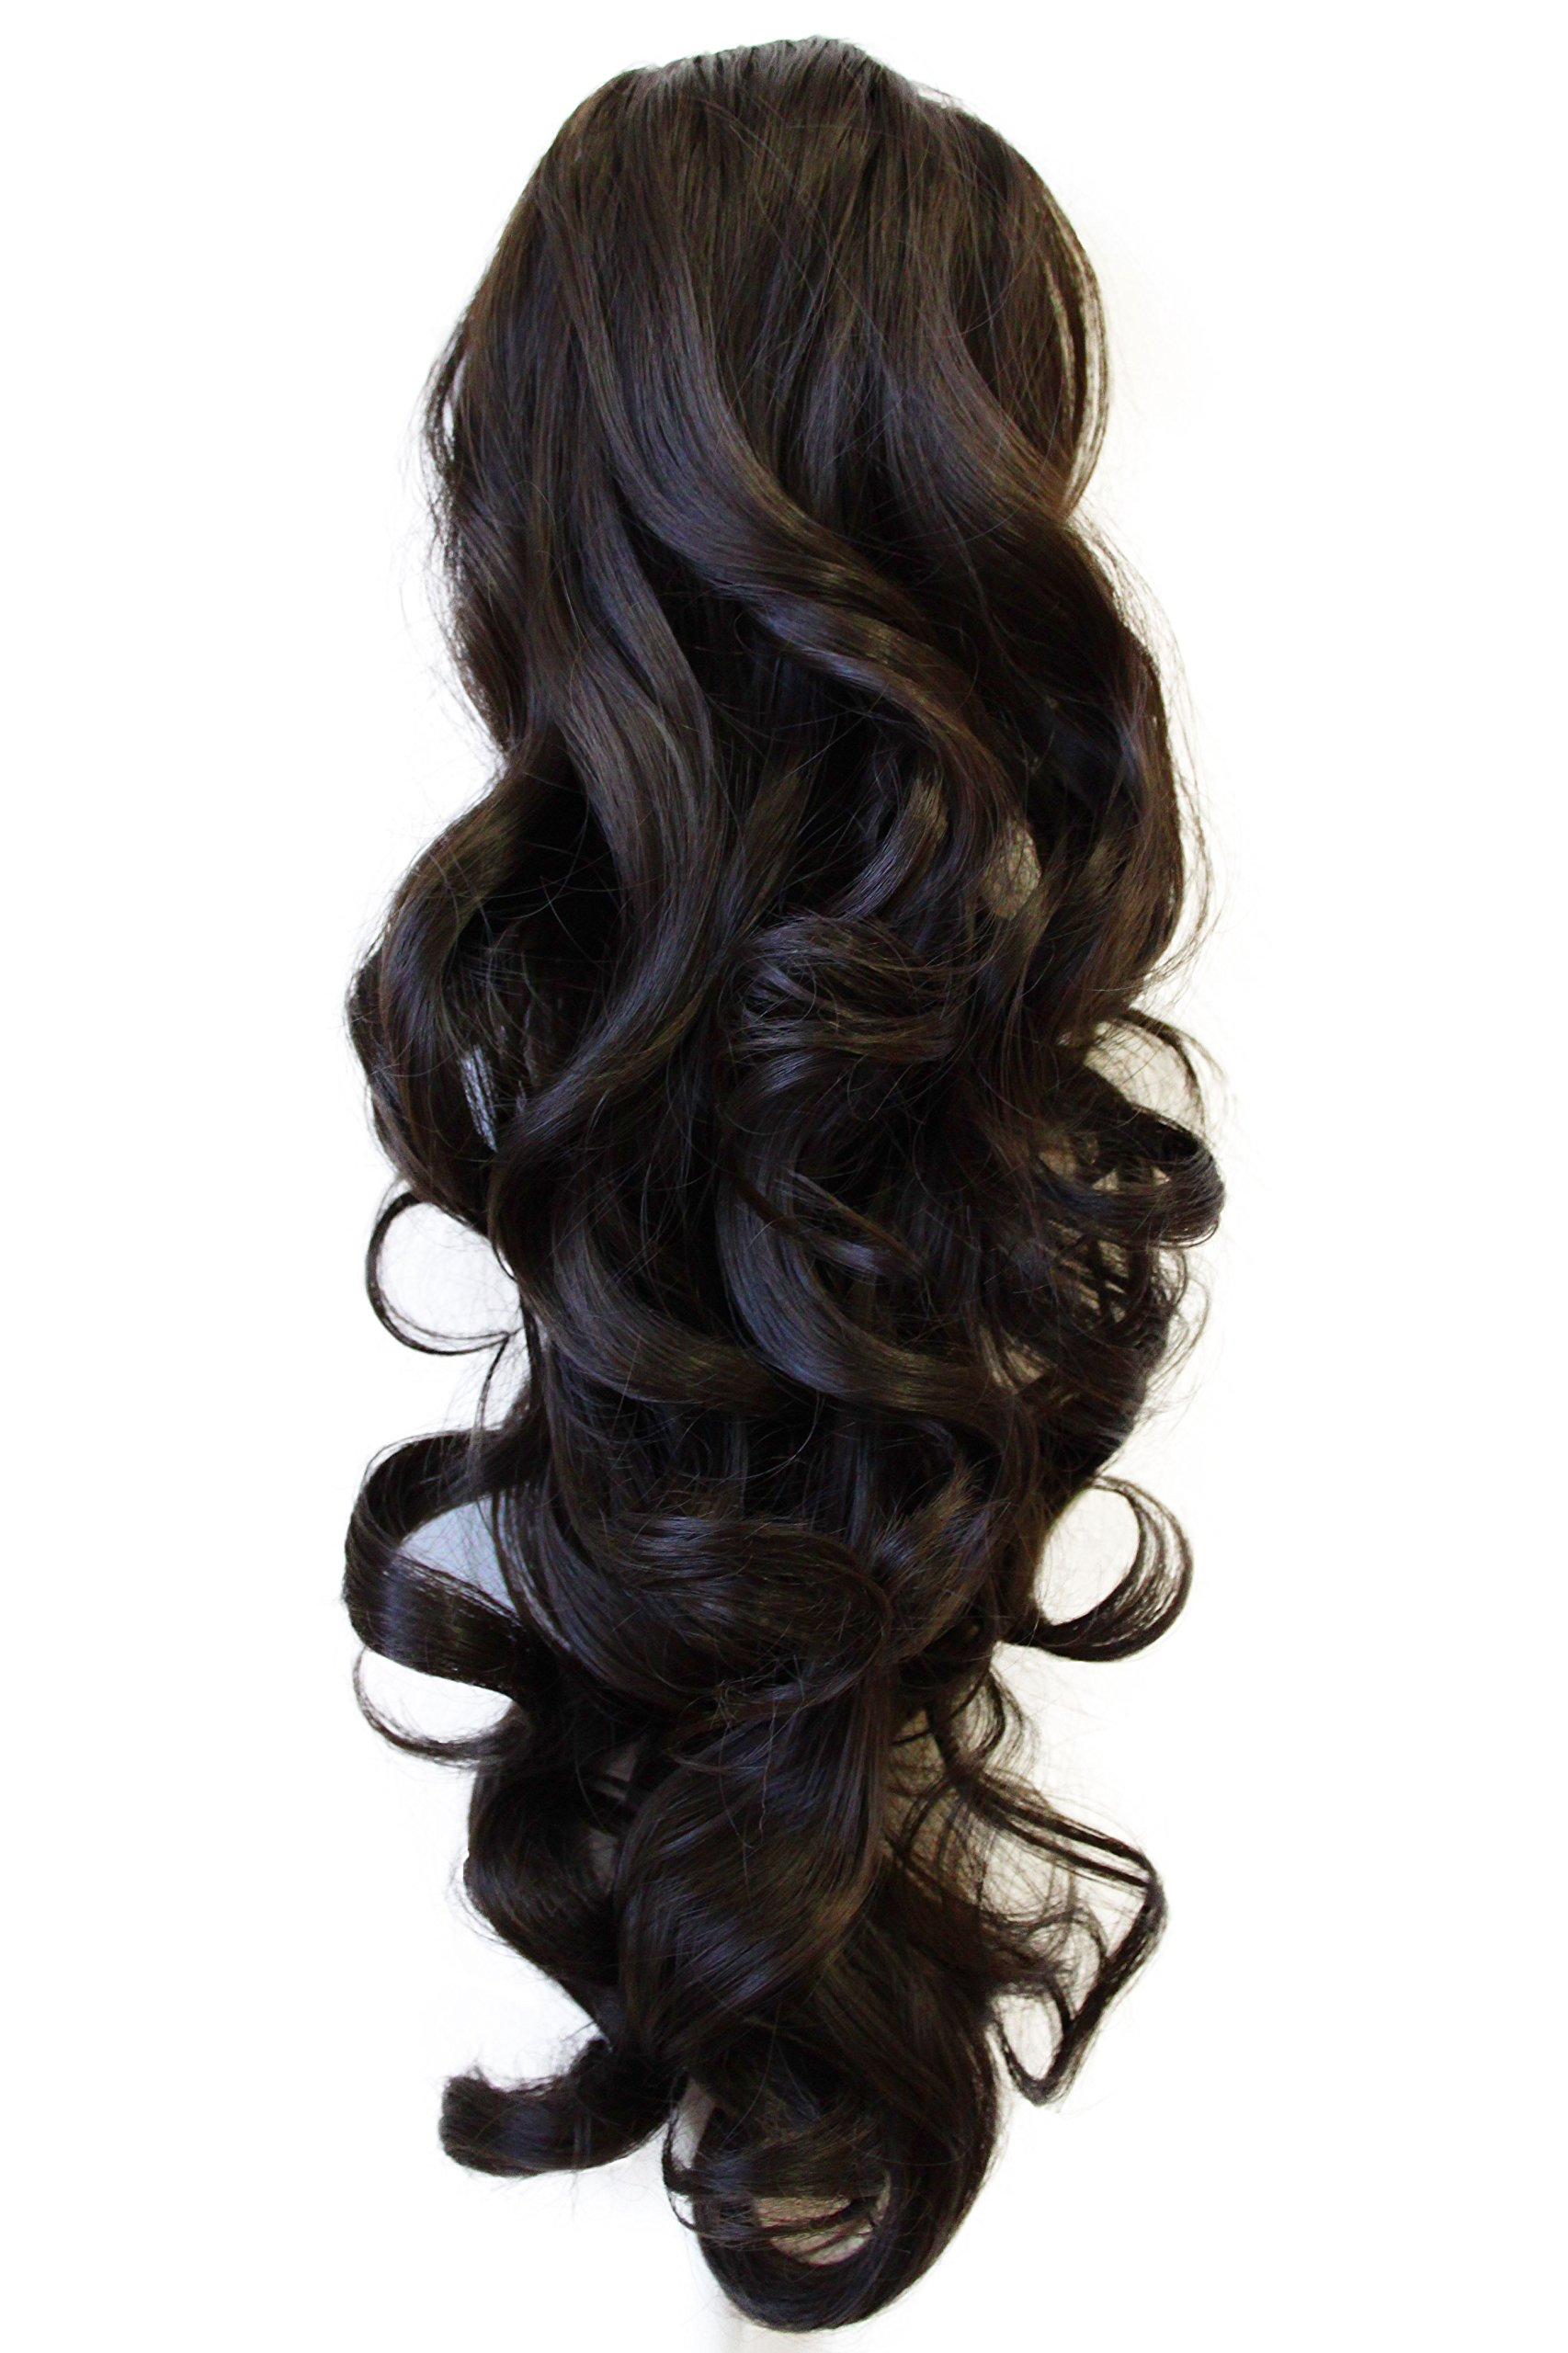 22'' & 150g Hair Piece Pony Tail Extension (DARK BROWN CHOCOLATE) Very Long & Voluminous Curled Wavy Heat-Resisting